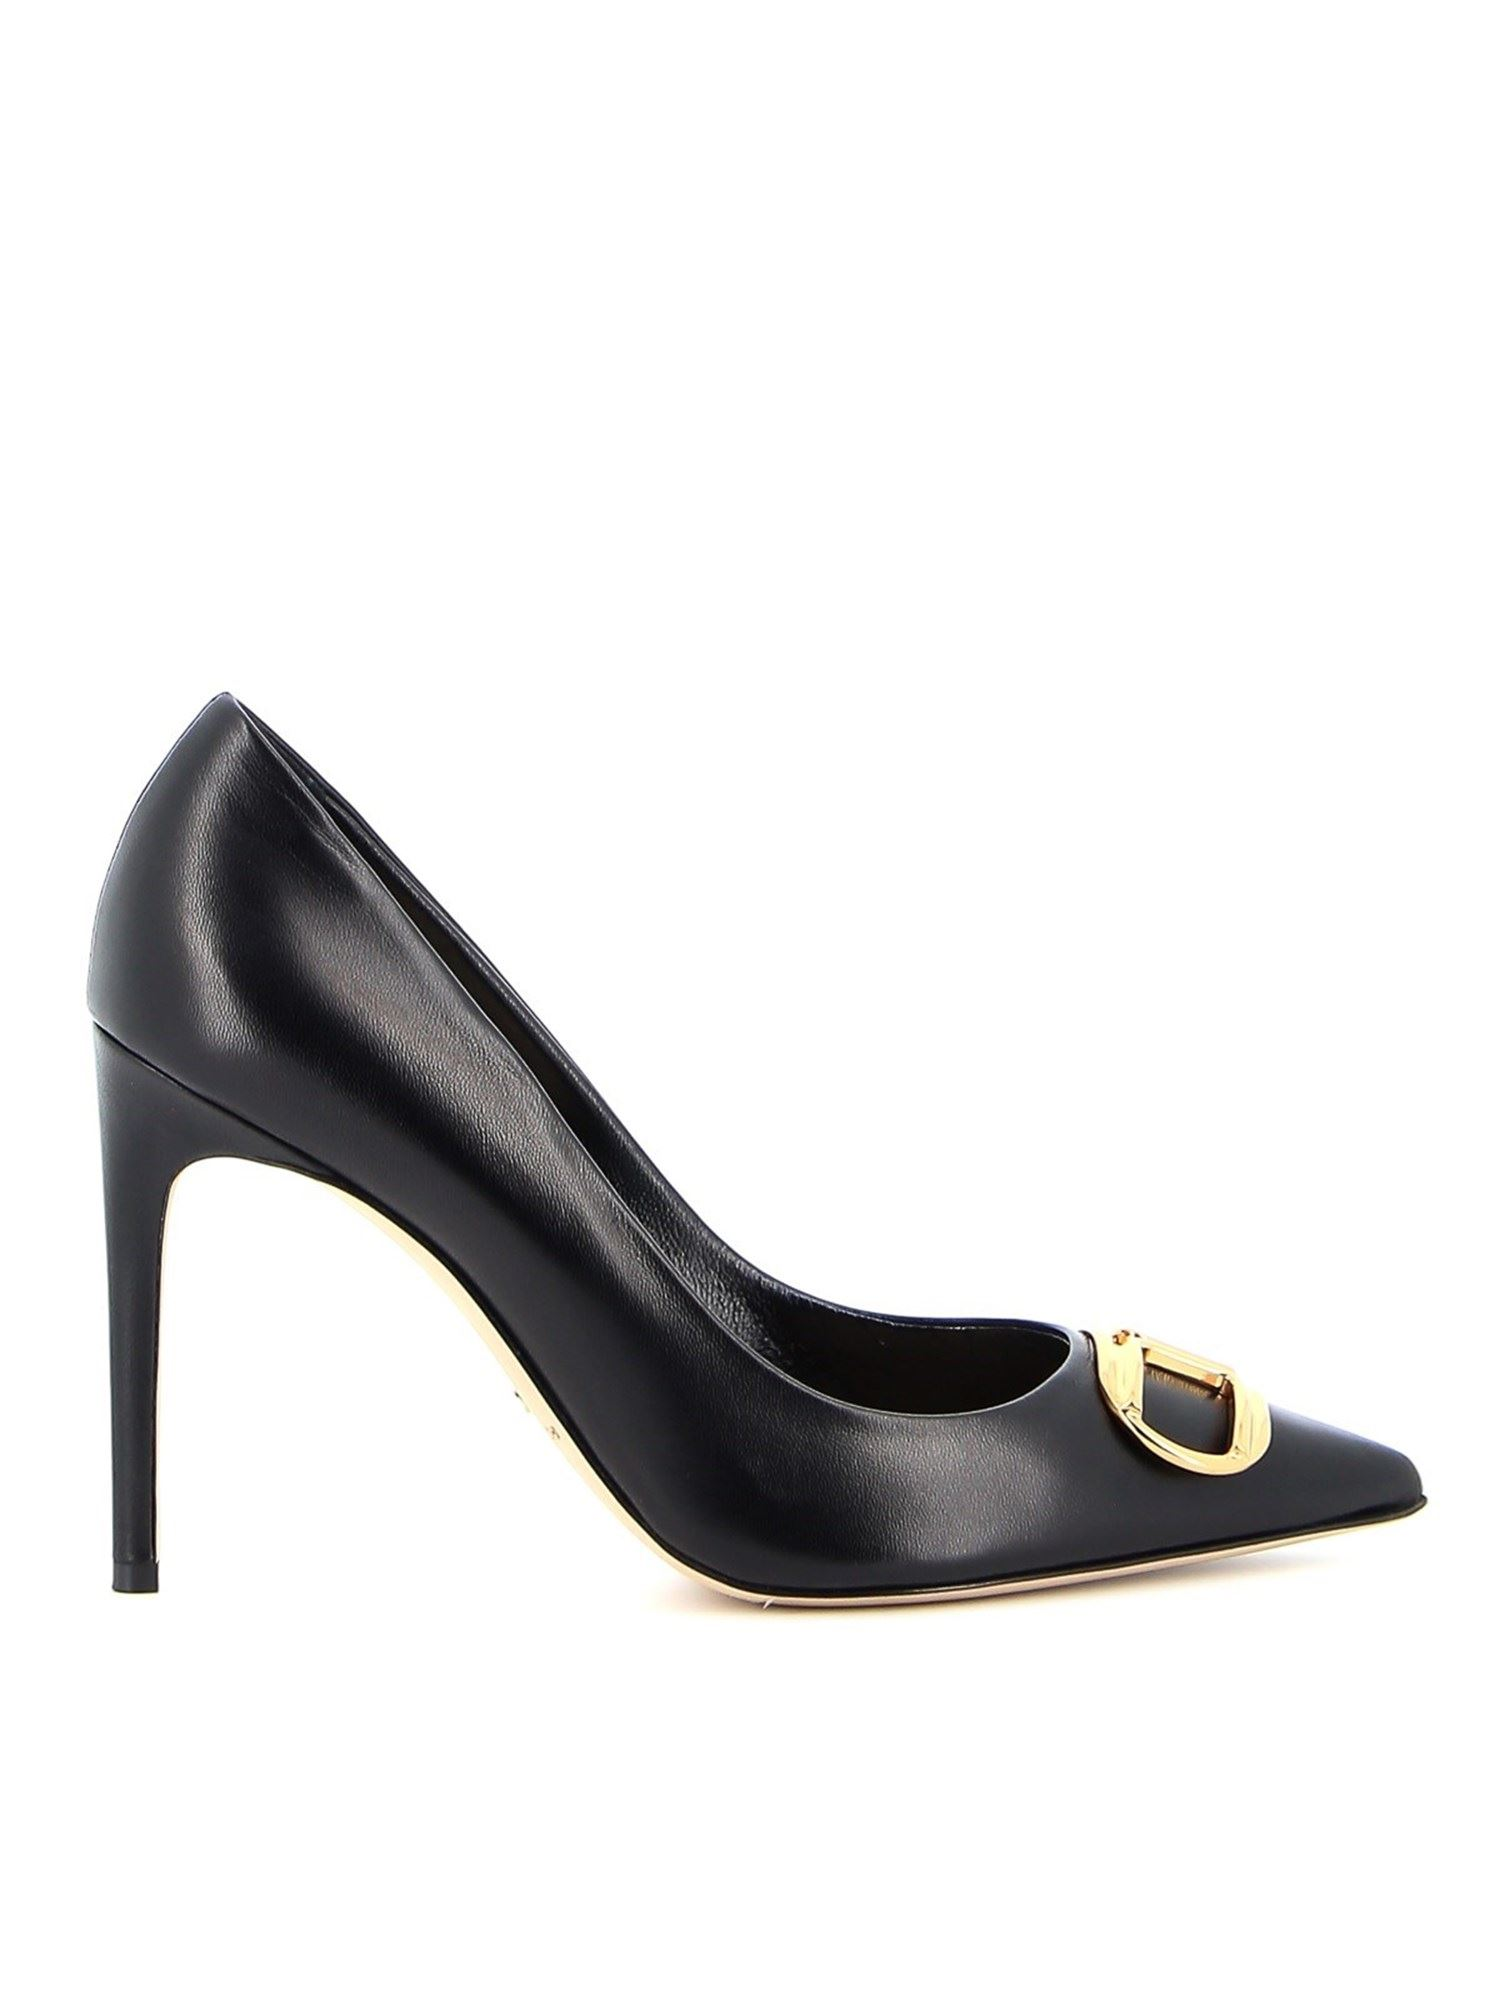 Elisabetta Franchi LEATHER PUMPS WITH LOGO BUCKLE IN BLACK